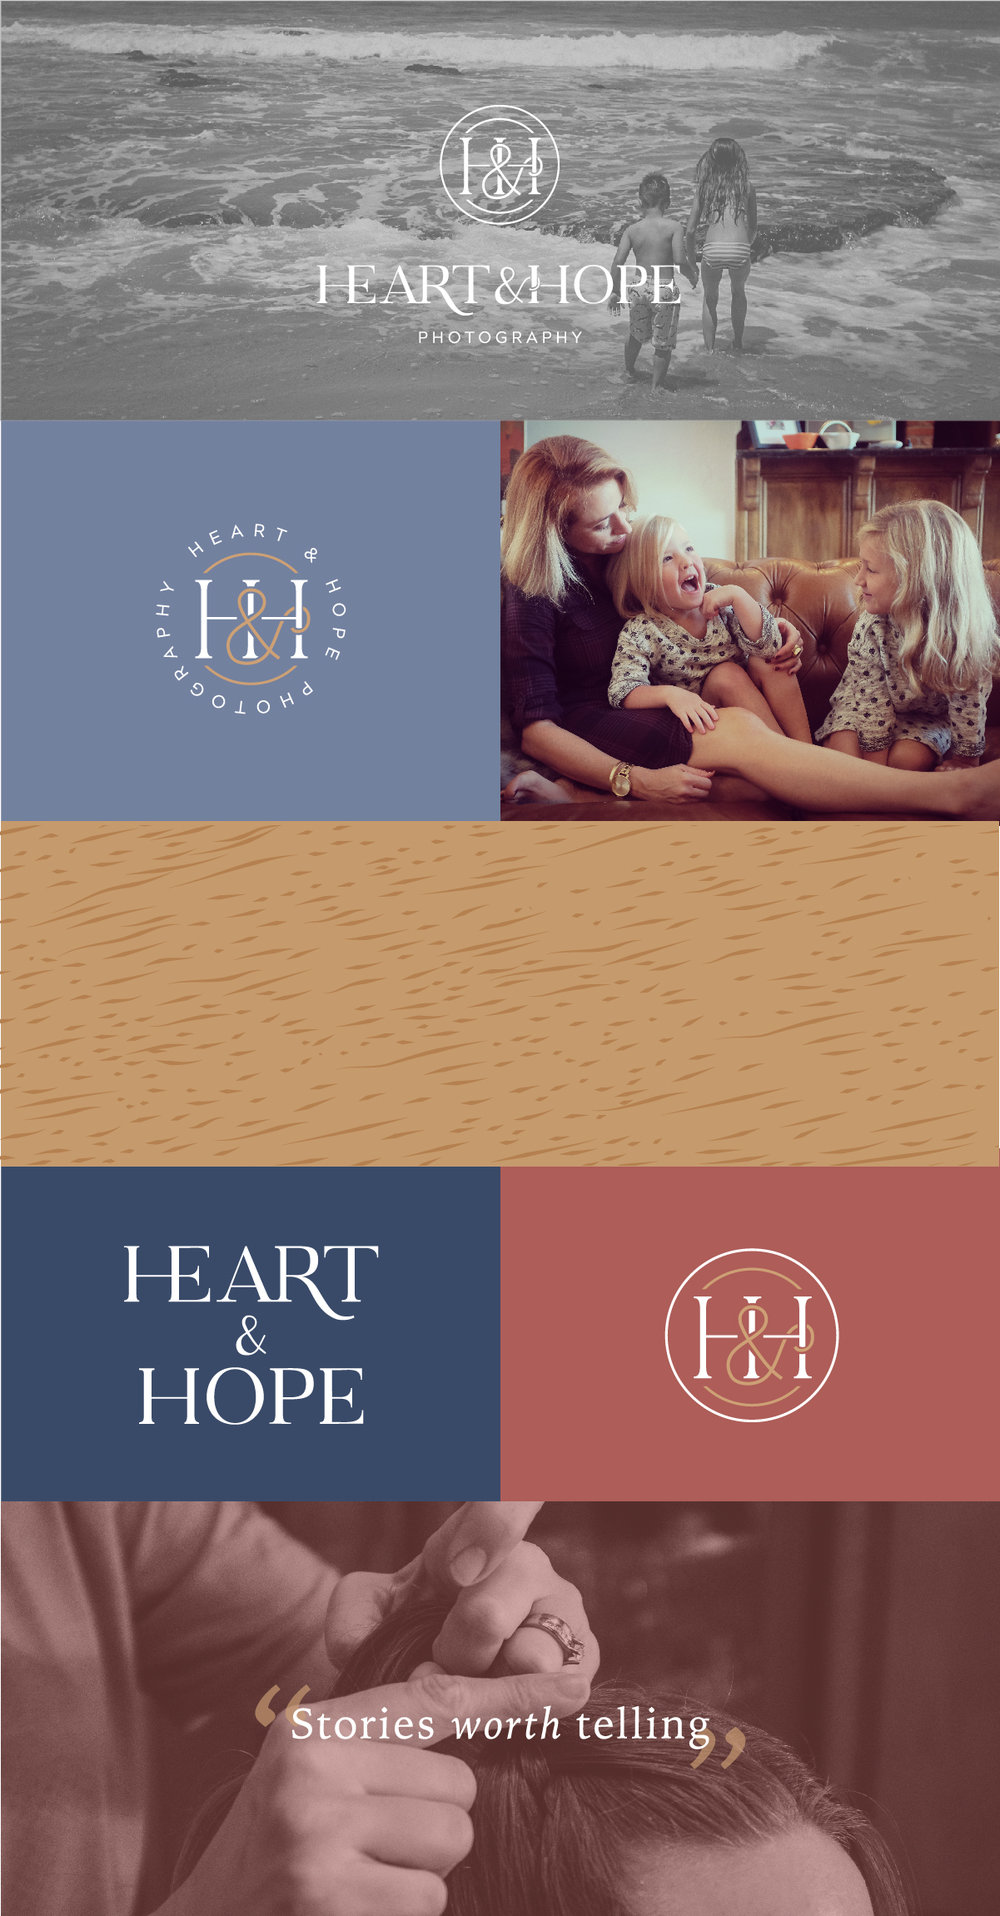 Heart and Hope Photography - tulsa brand designer - documentary photography brand - oklahoma logo design - Hayley bigham designs